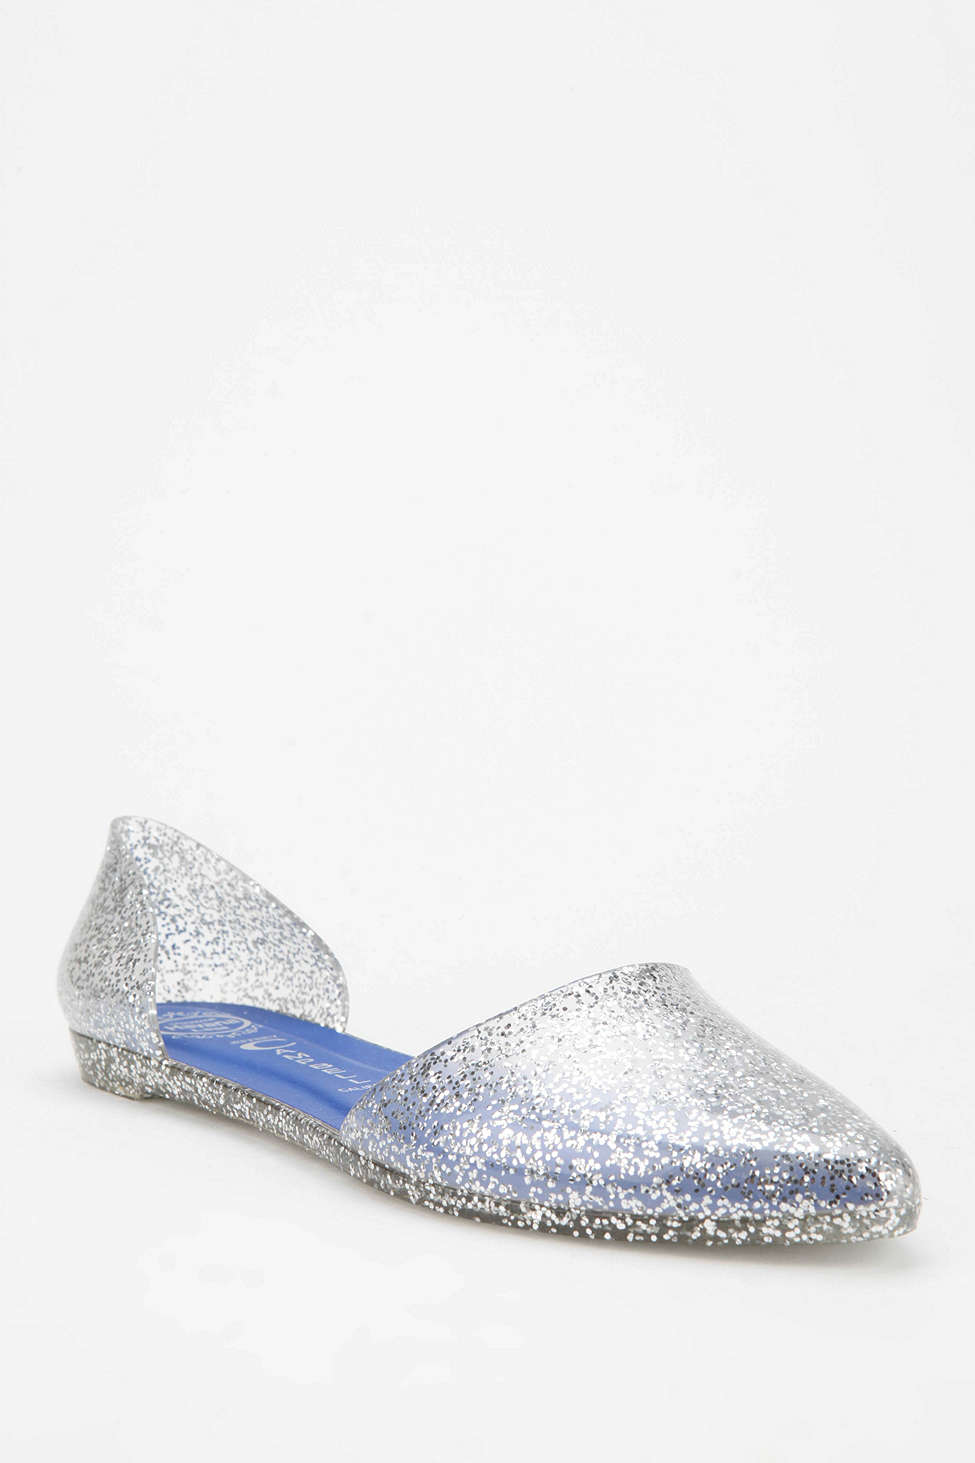 AZAZIE_Wedding_Shoes_Jeffrey_Campbell